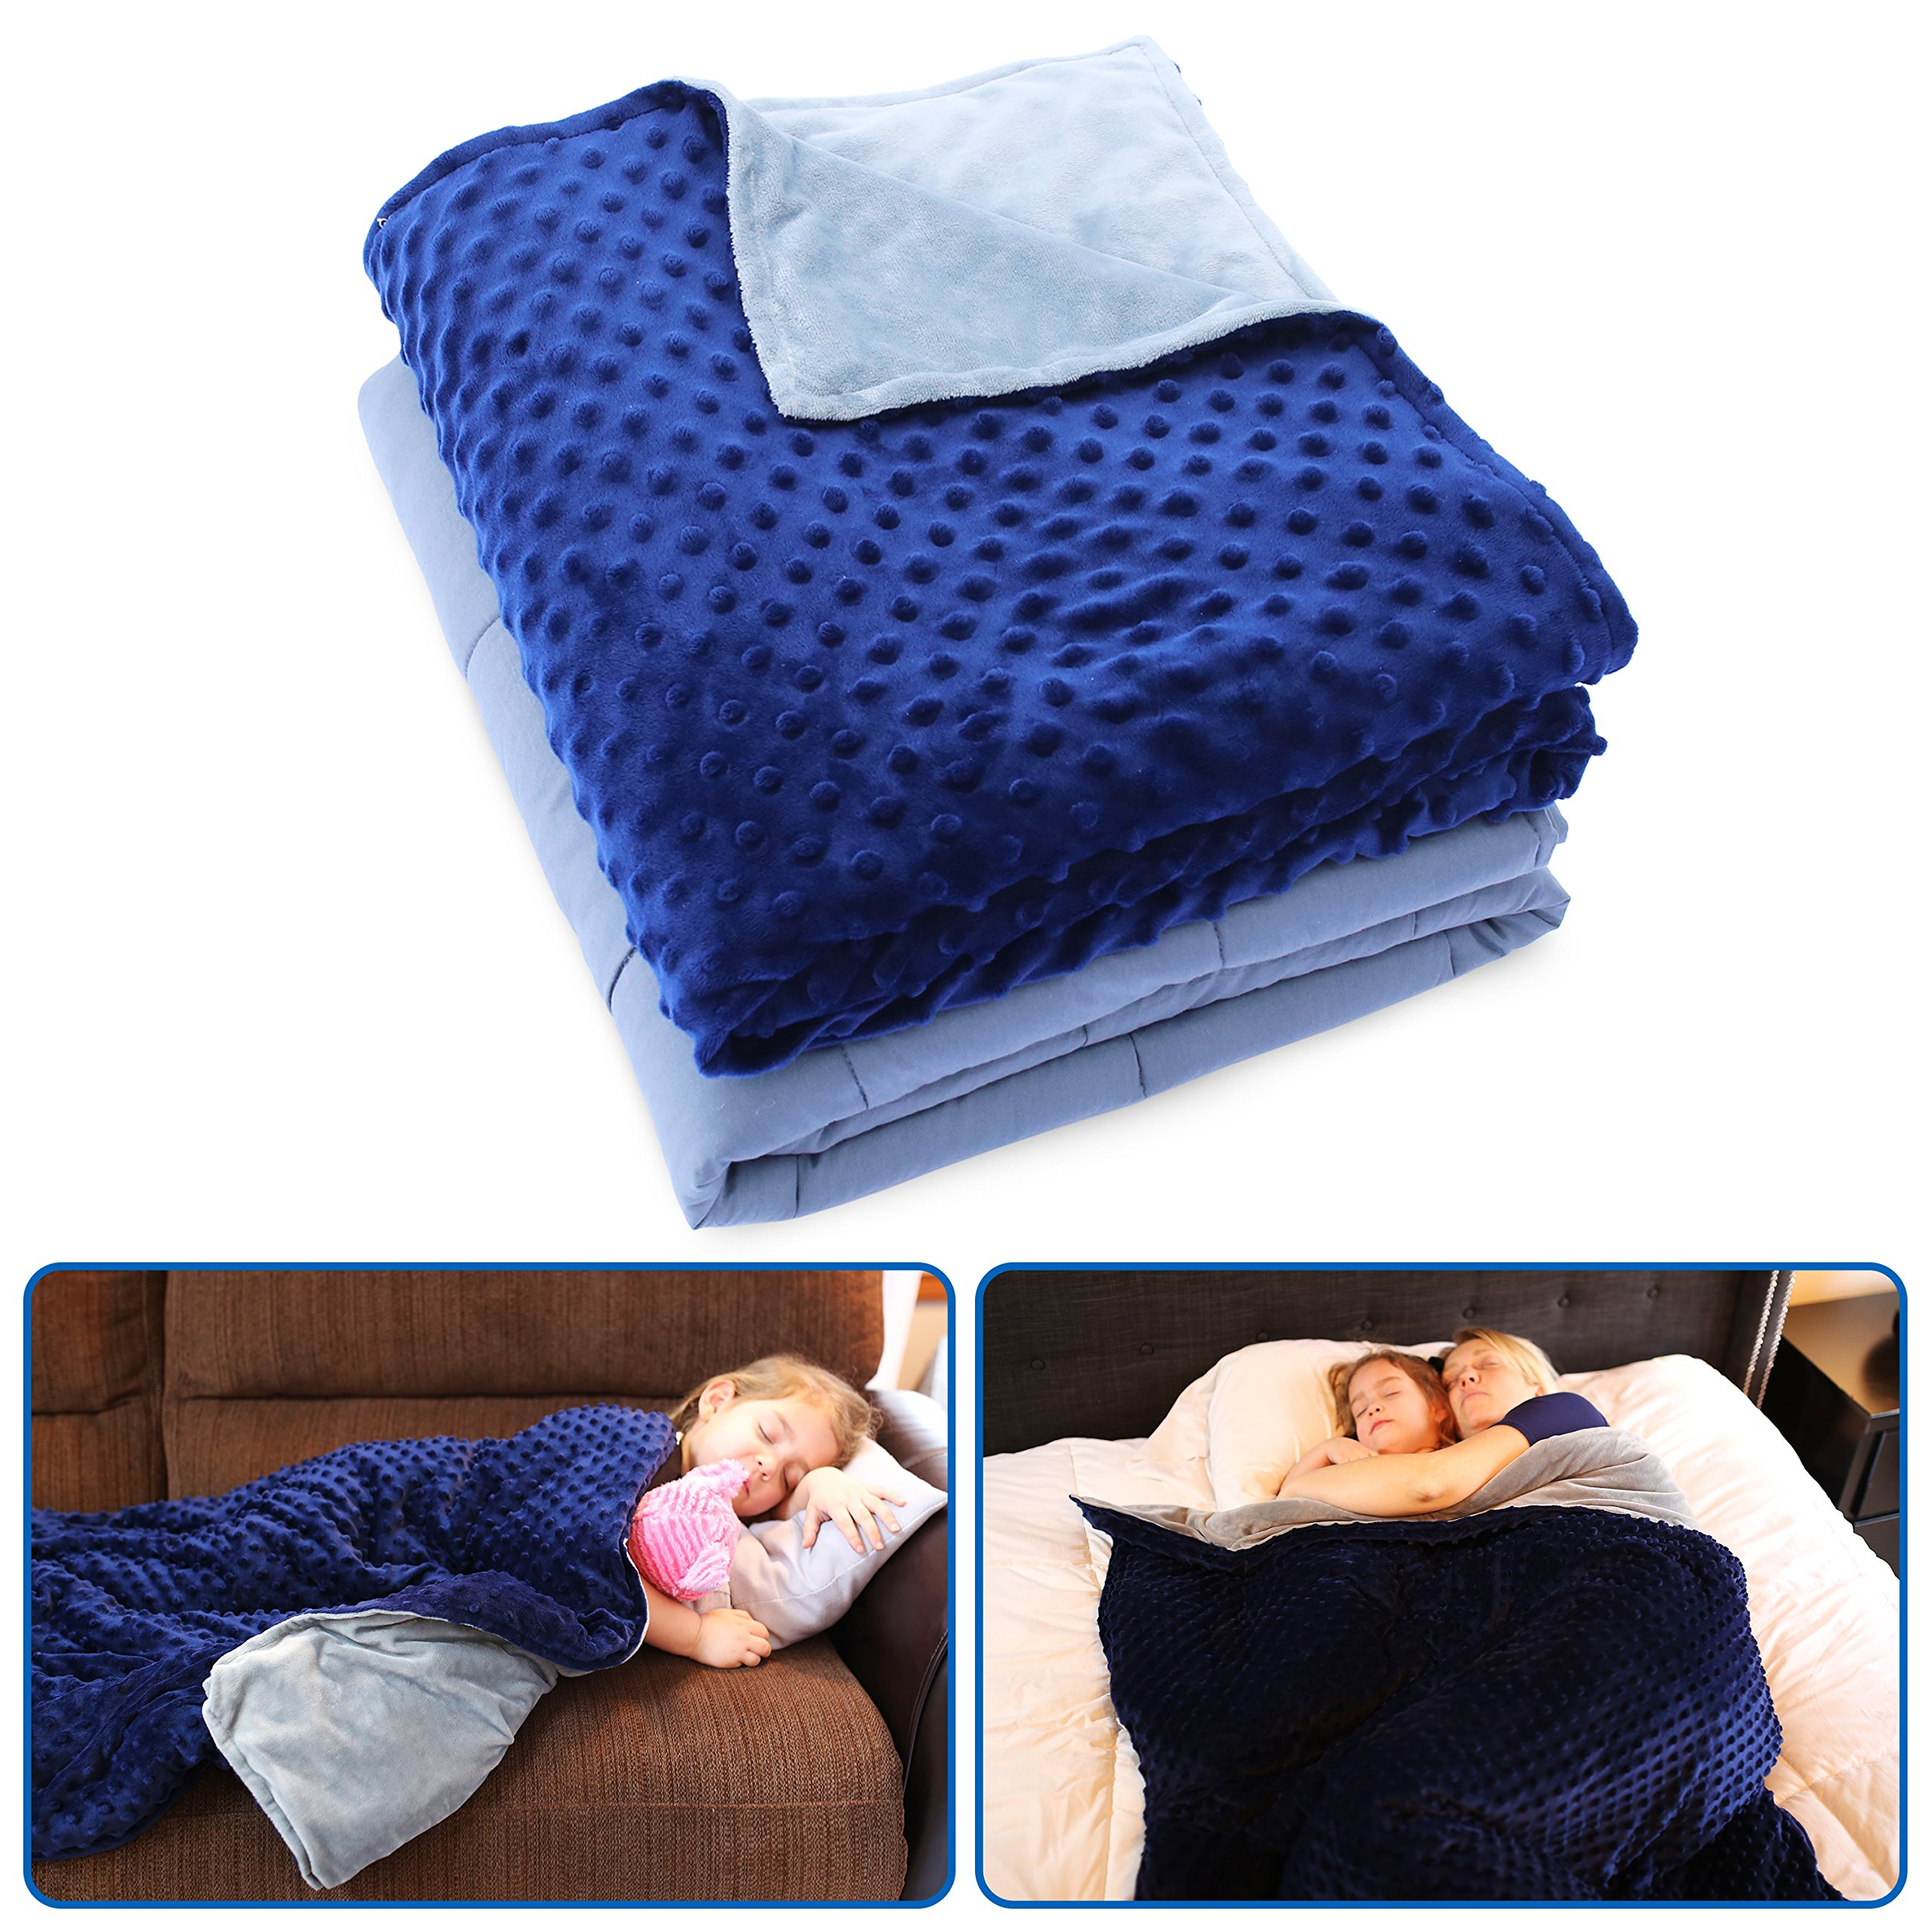 Weighted Blanket with Duvet Cover by Borbona - PROFITS GO TO CHARITY - Perfect for Children and Adults with Autism, Sensory Needs, OCD, or Anxiety - Use as Throw Blanket on Bed/Couch - (45''x70'') 12LBS